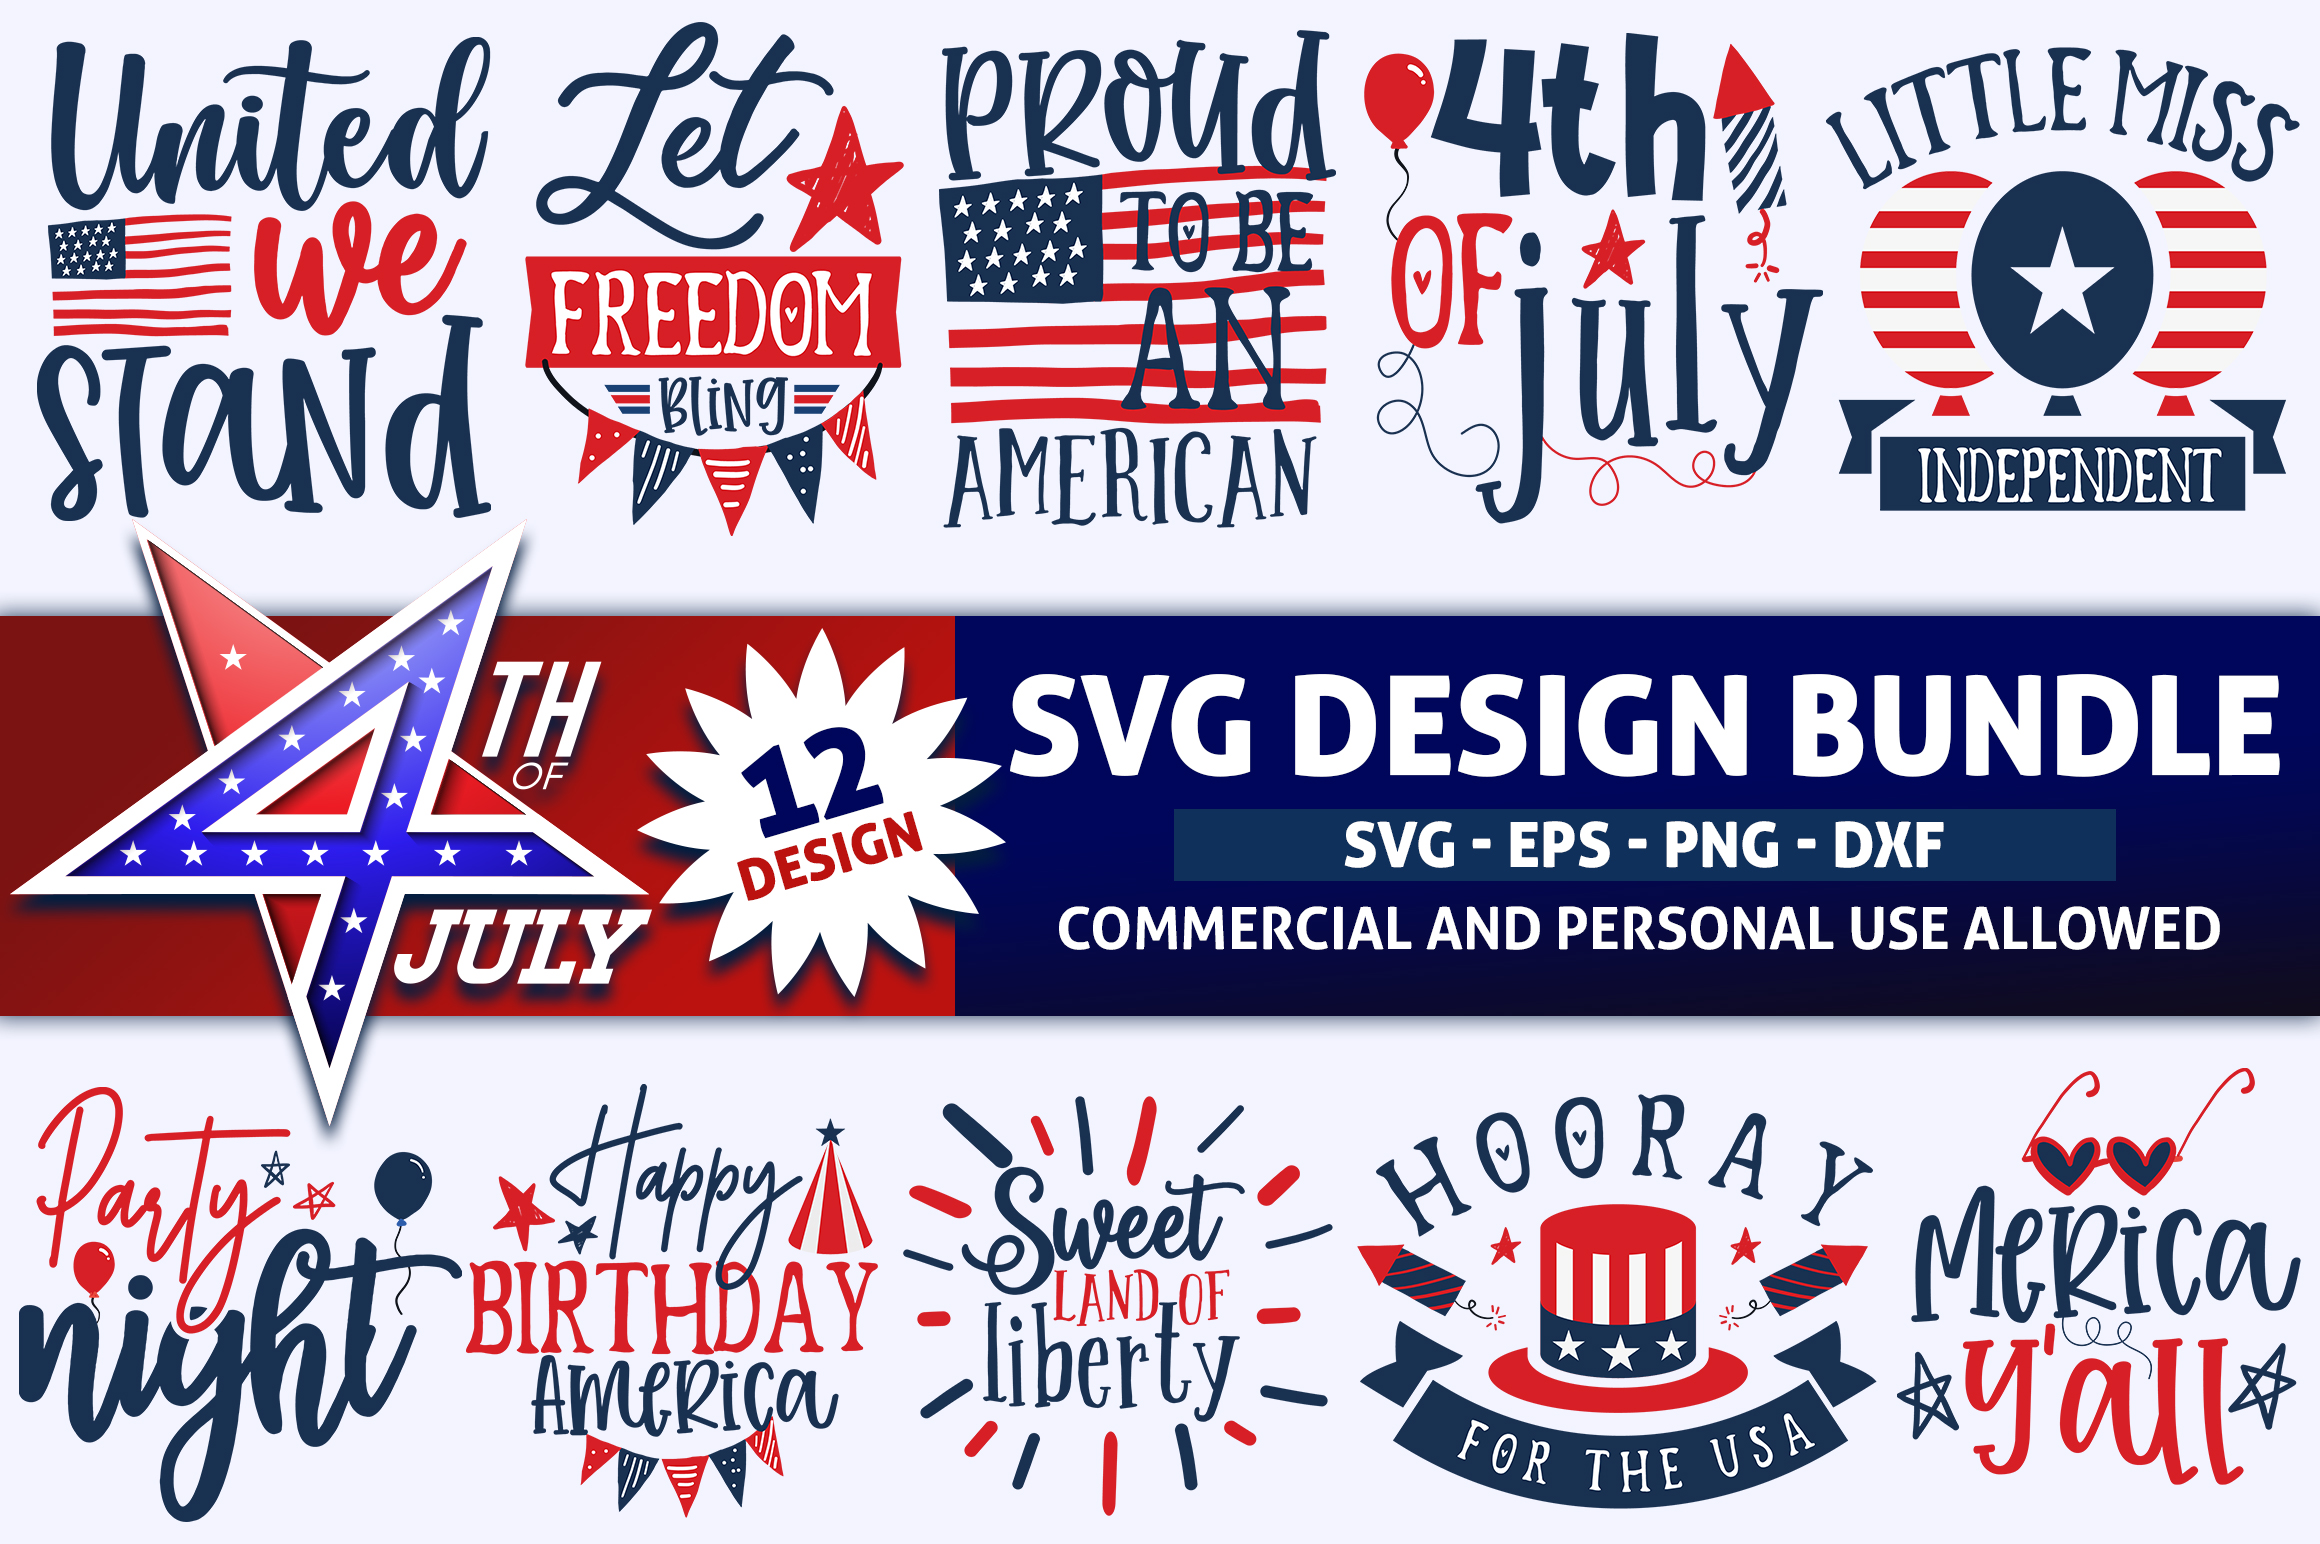 510 SVG DESIGN THE MIGHTY BUNDLE |32 DIFFERENT BUNDLES example image 9